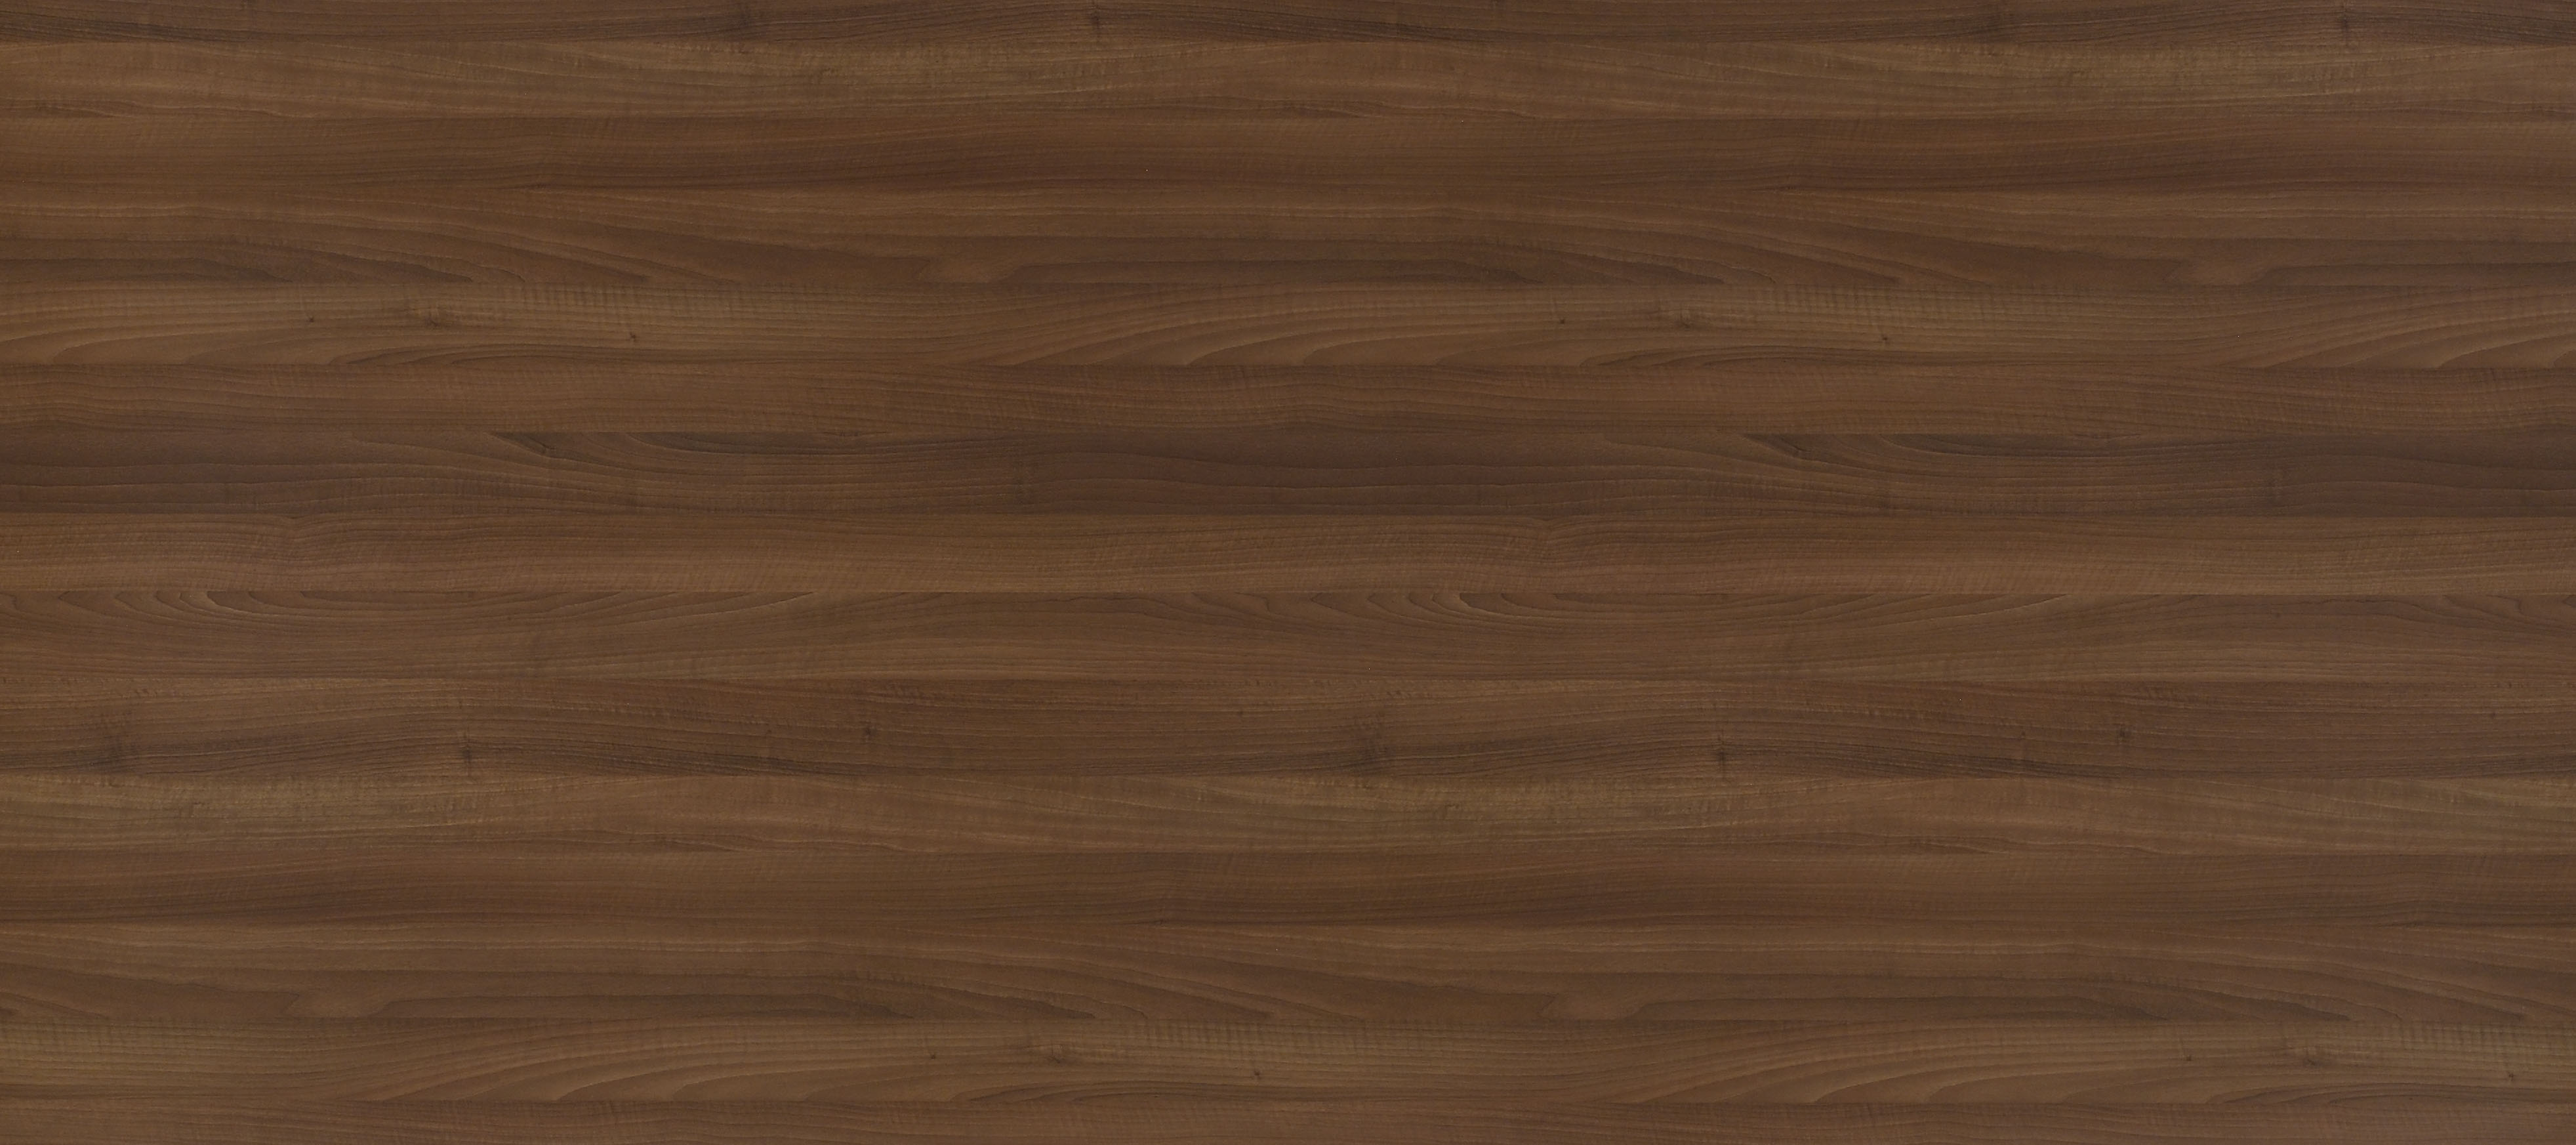 Wood free download photo download wood texture background texture wood free download photo download wood texture background voltagebd Choice Image